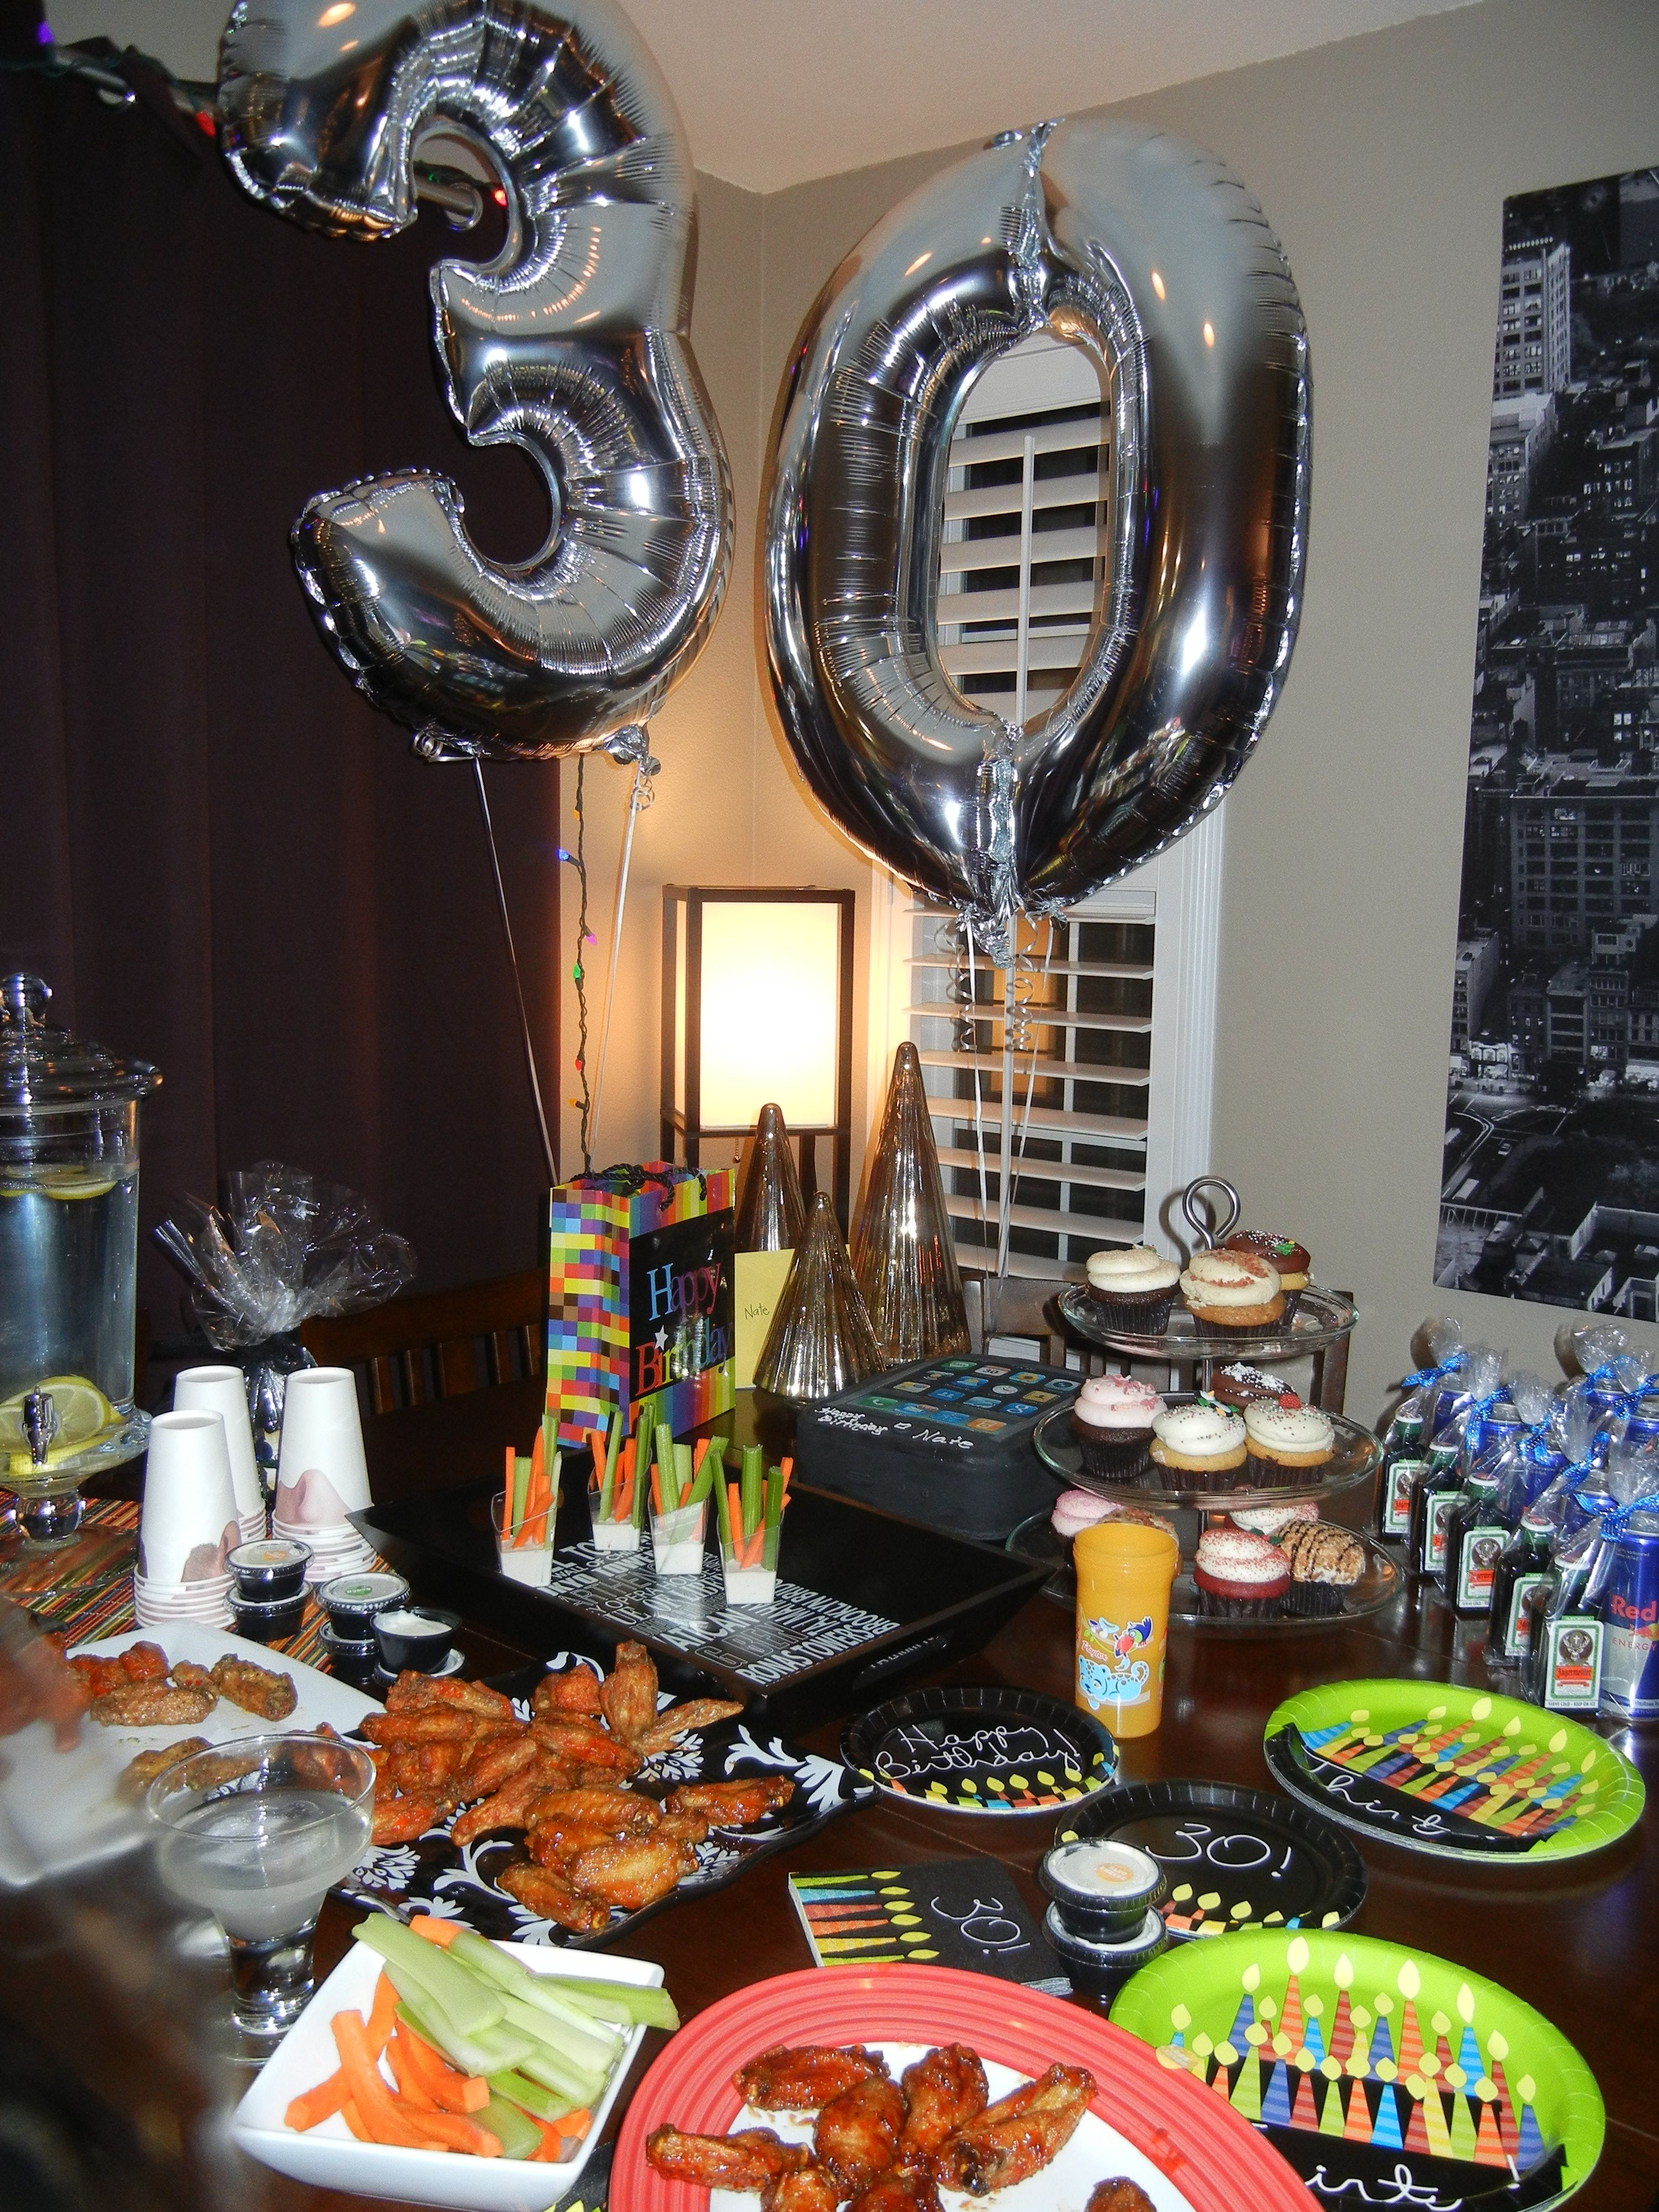 Best ideas about 30th Birthday Party Decorations . Save or Pin Husband s 30th birthday My stuff Now.